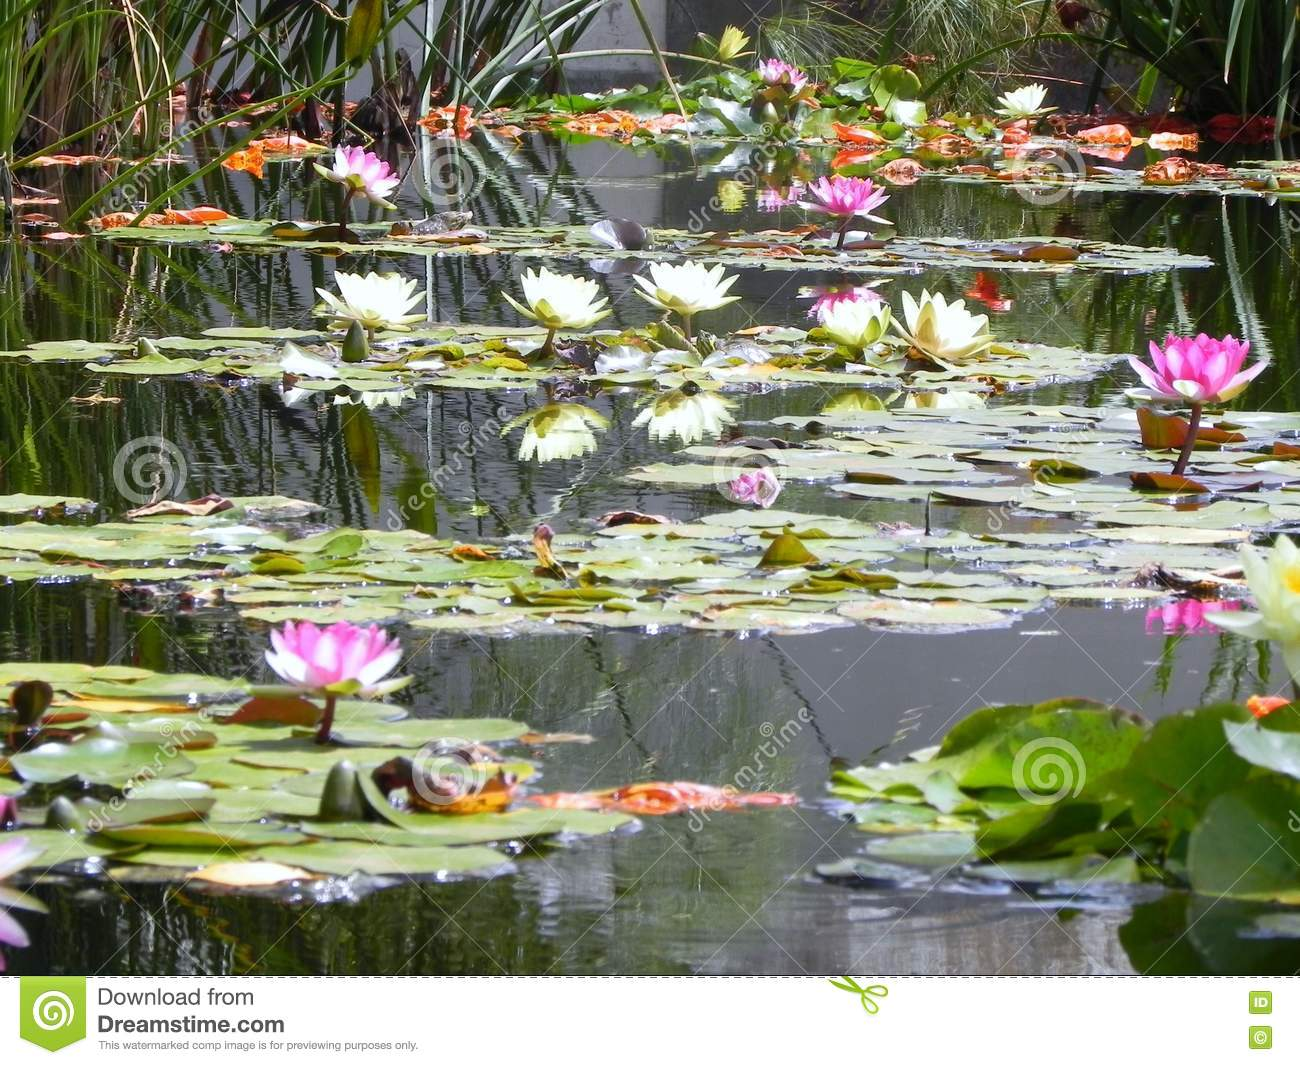 Lilly water